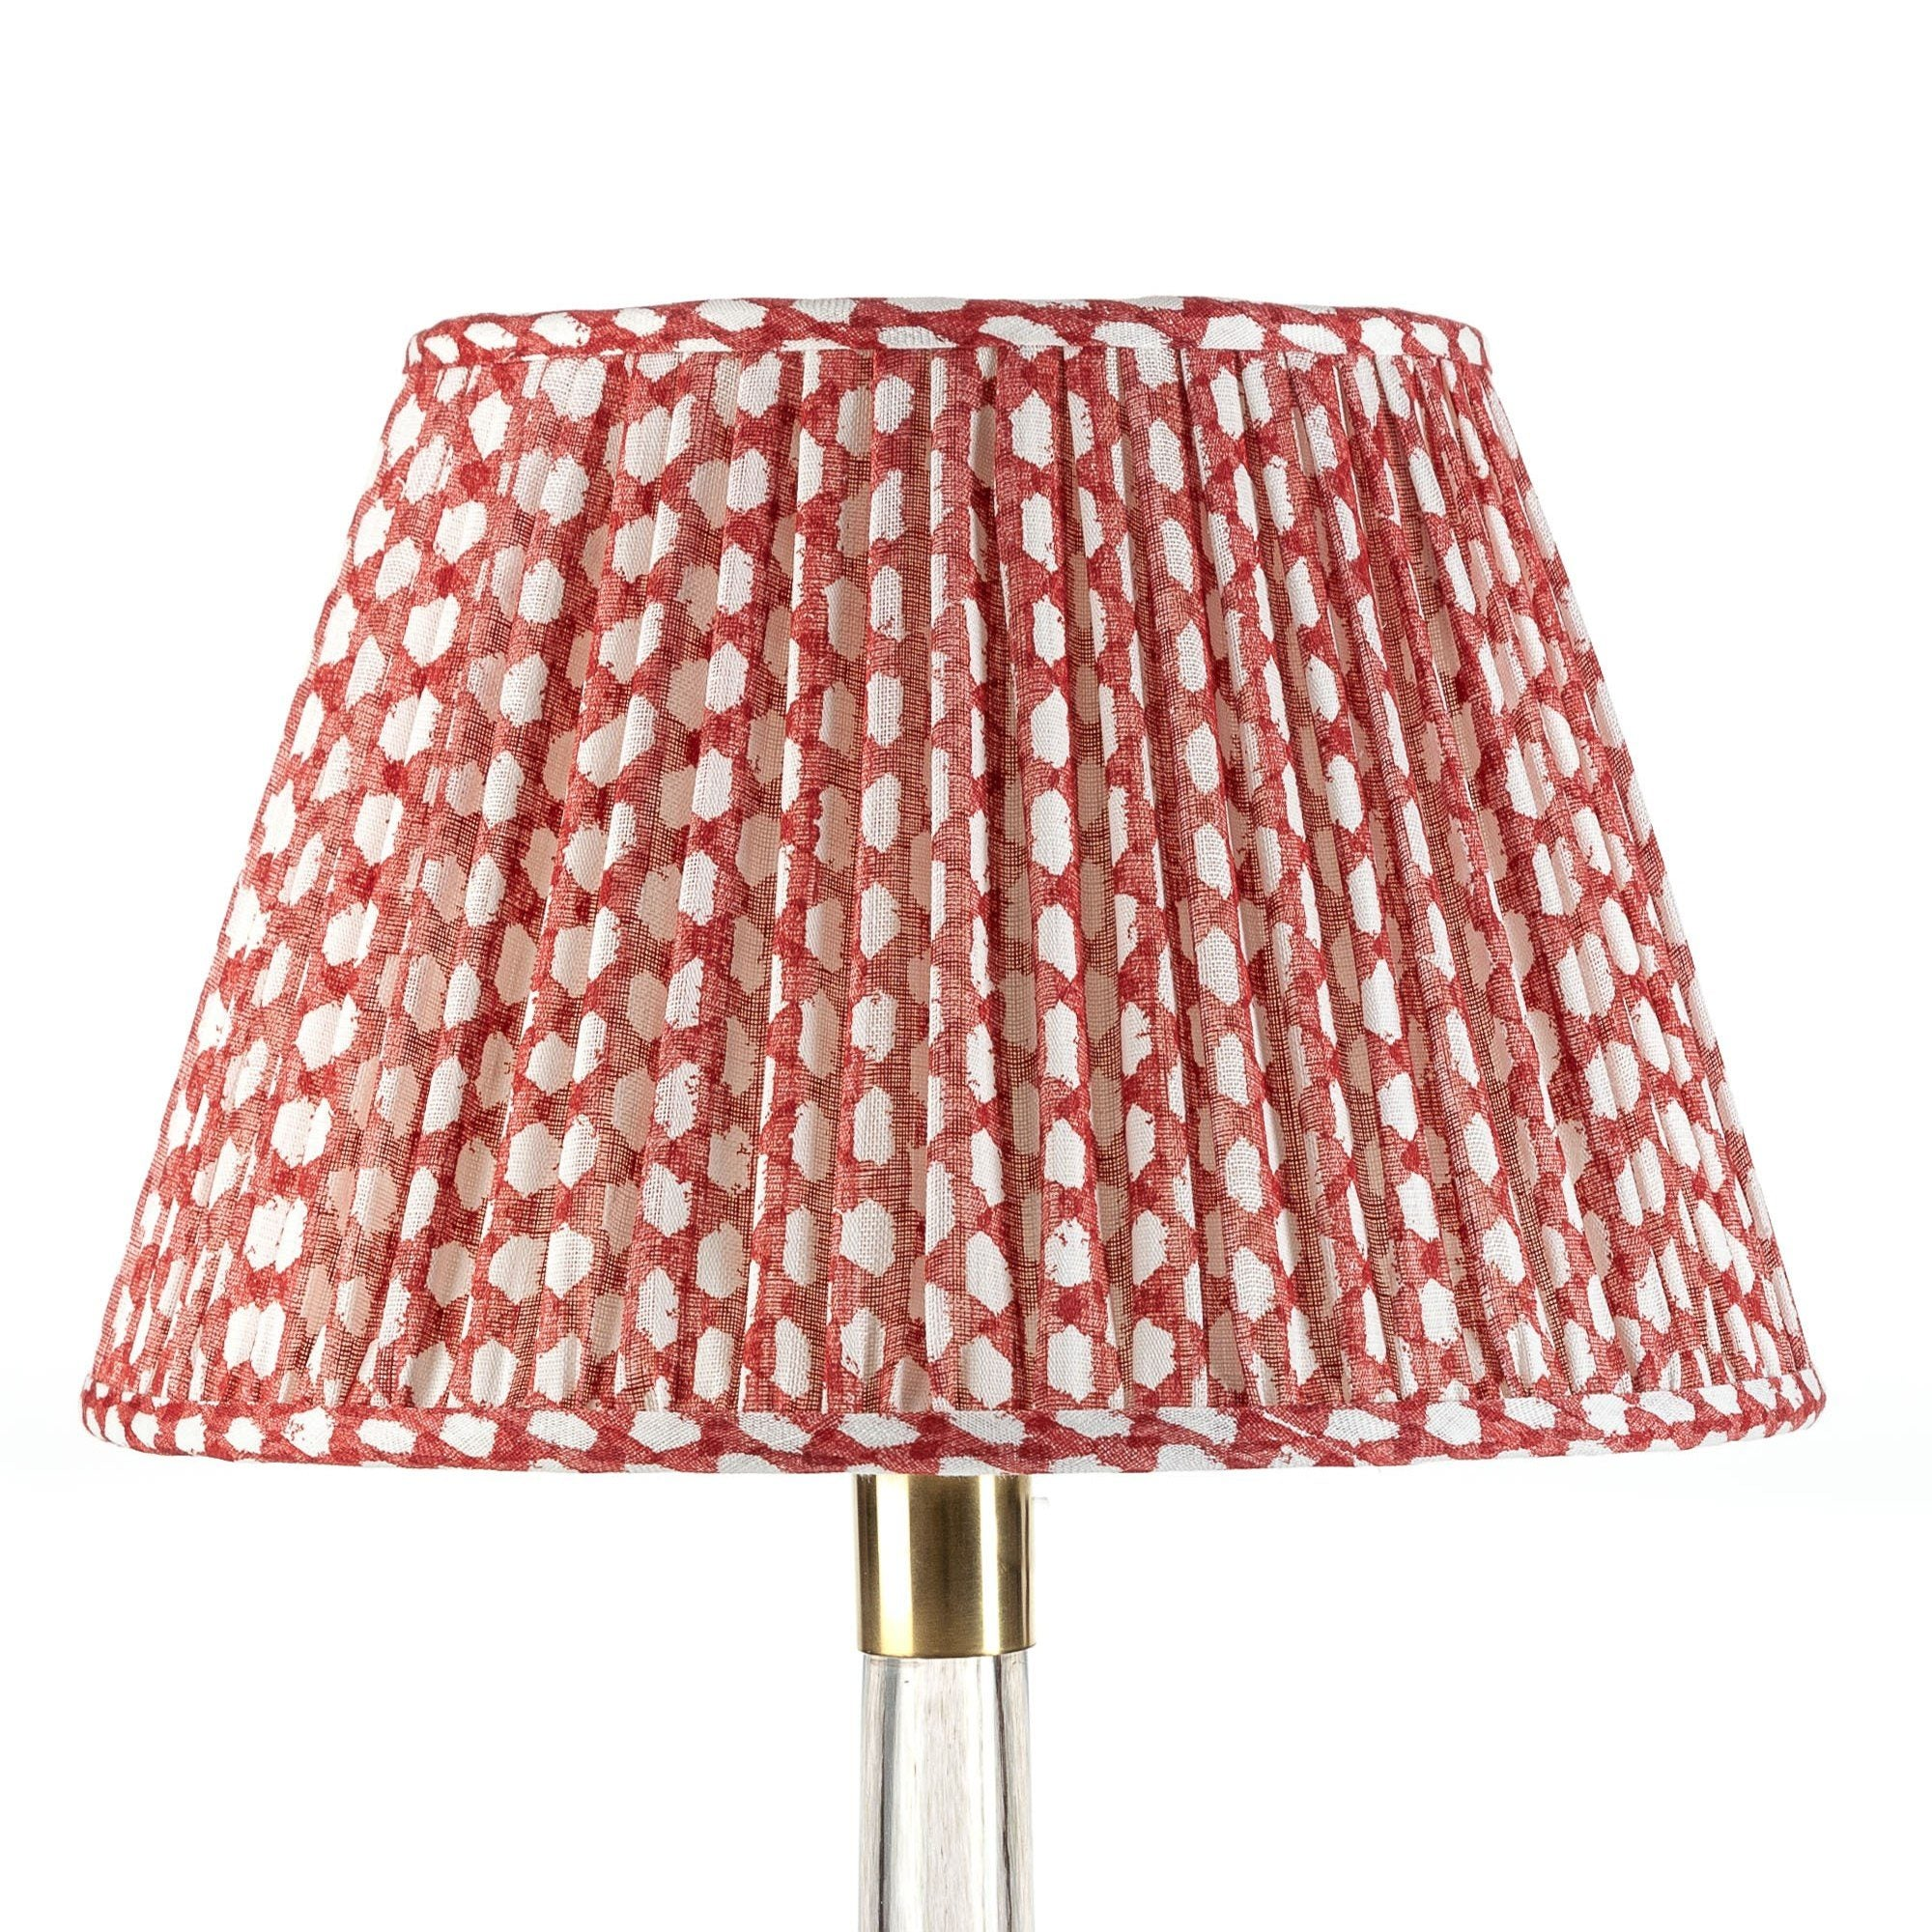 Fermoie Lampshade in Red Wicker